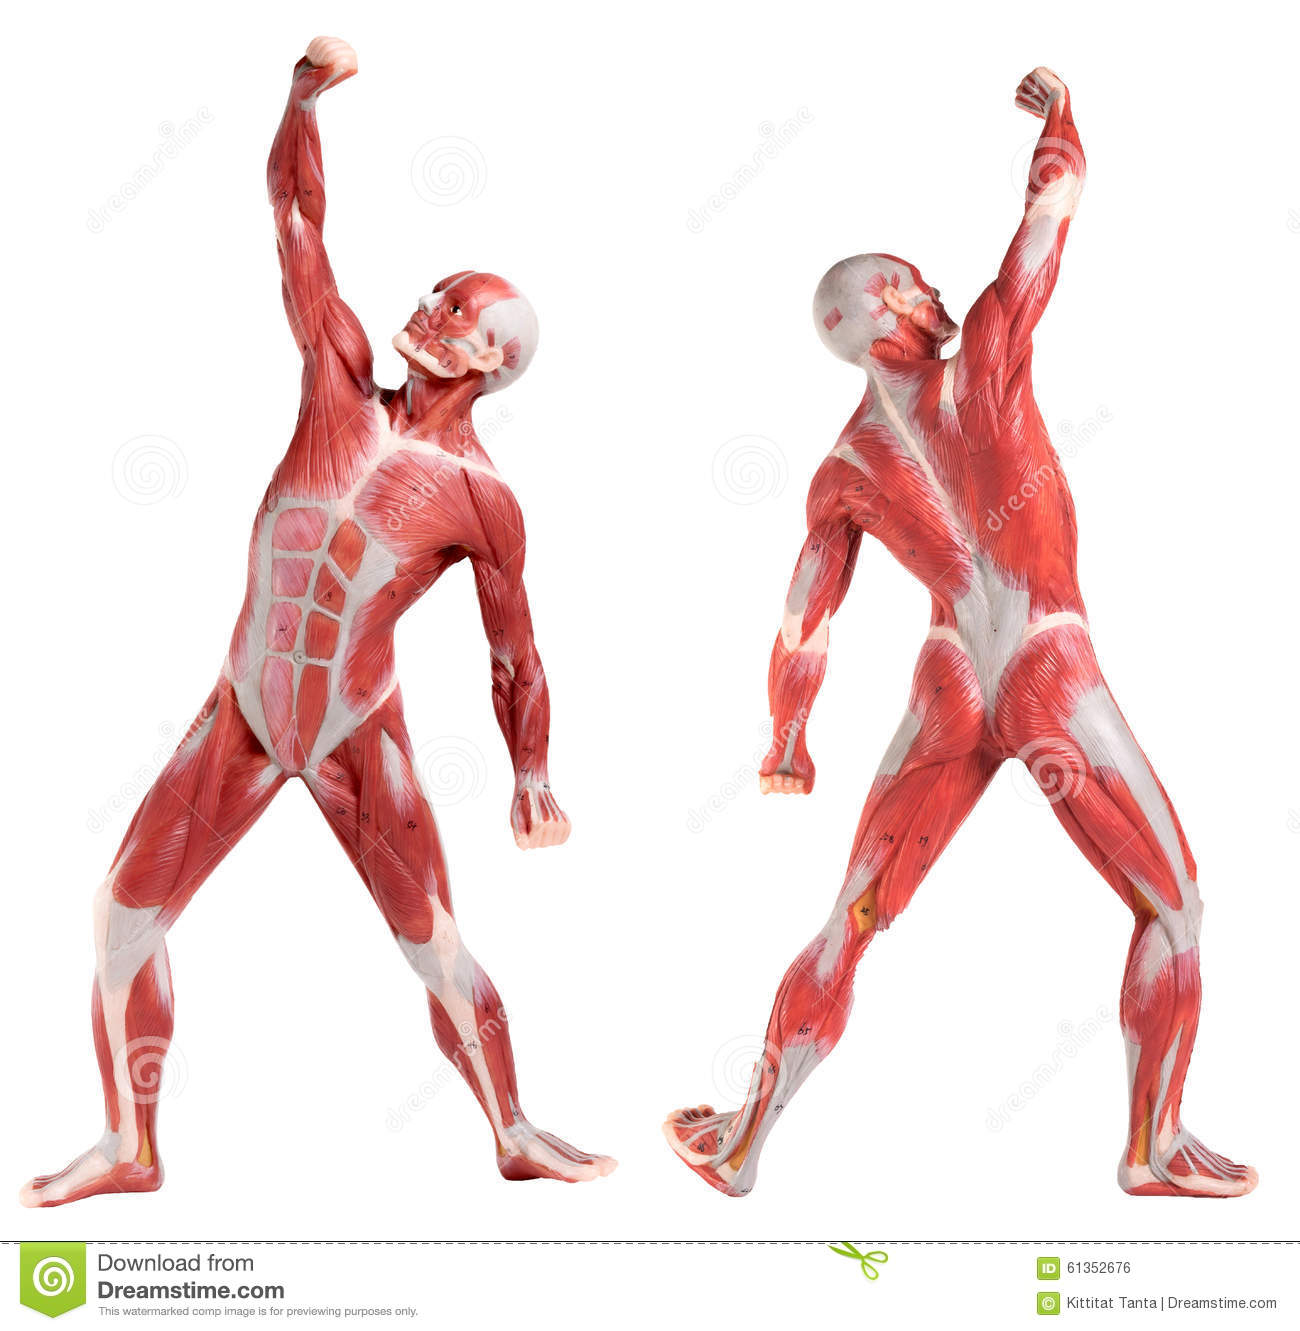 Male anatomy of muscular system (front and back view)